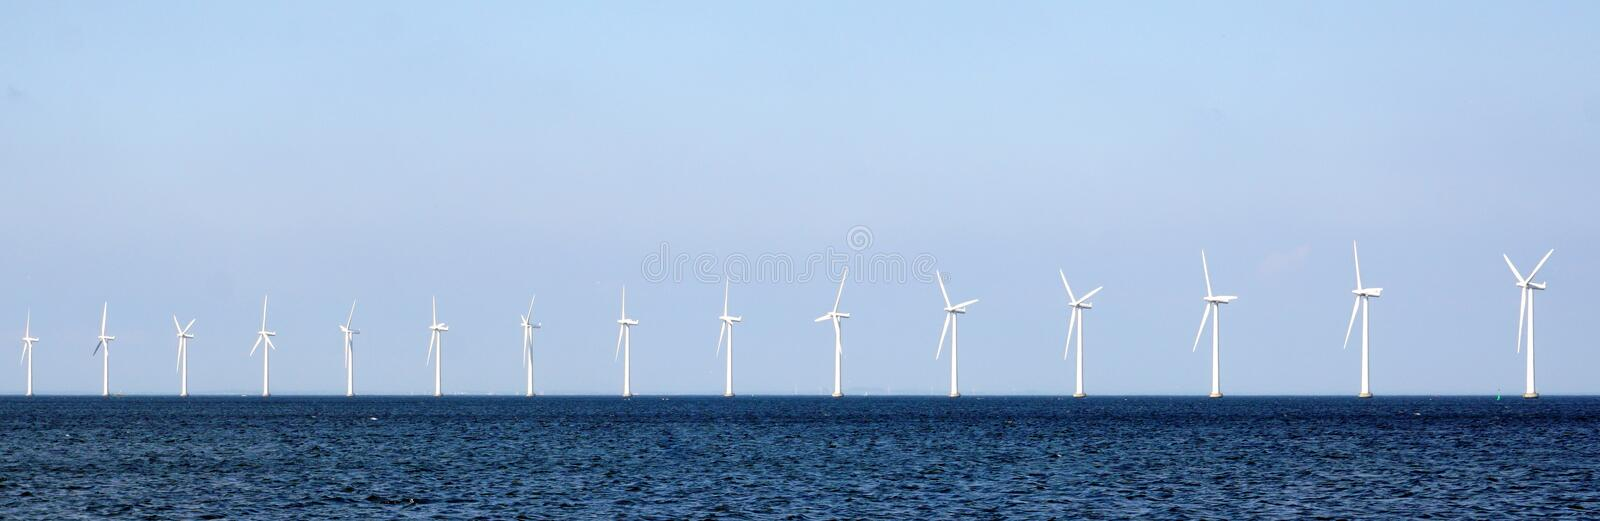 Wind turbines in Sea royalty free stock photos